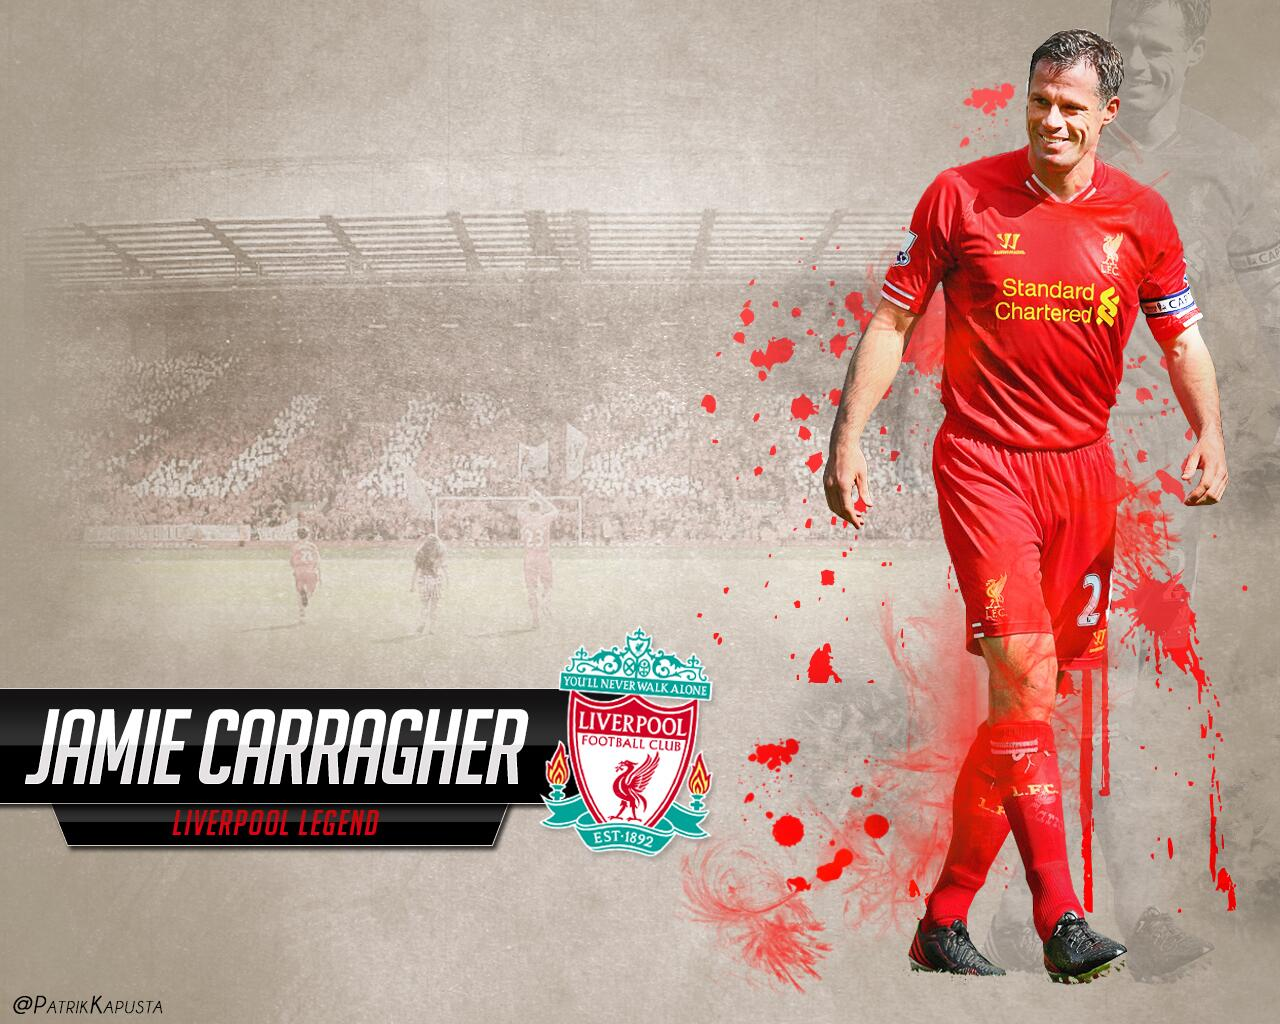 @MostarLFC please can you retweet this? I would be very happy! :-) #LFC  #ThanksCarra  #Carra  #JC23 http://t.co/7de302K9DM